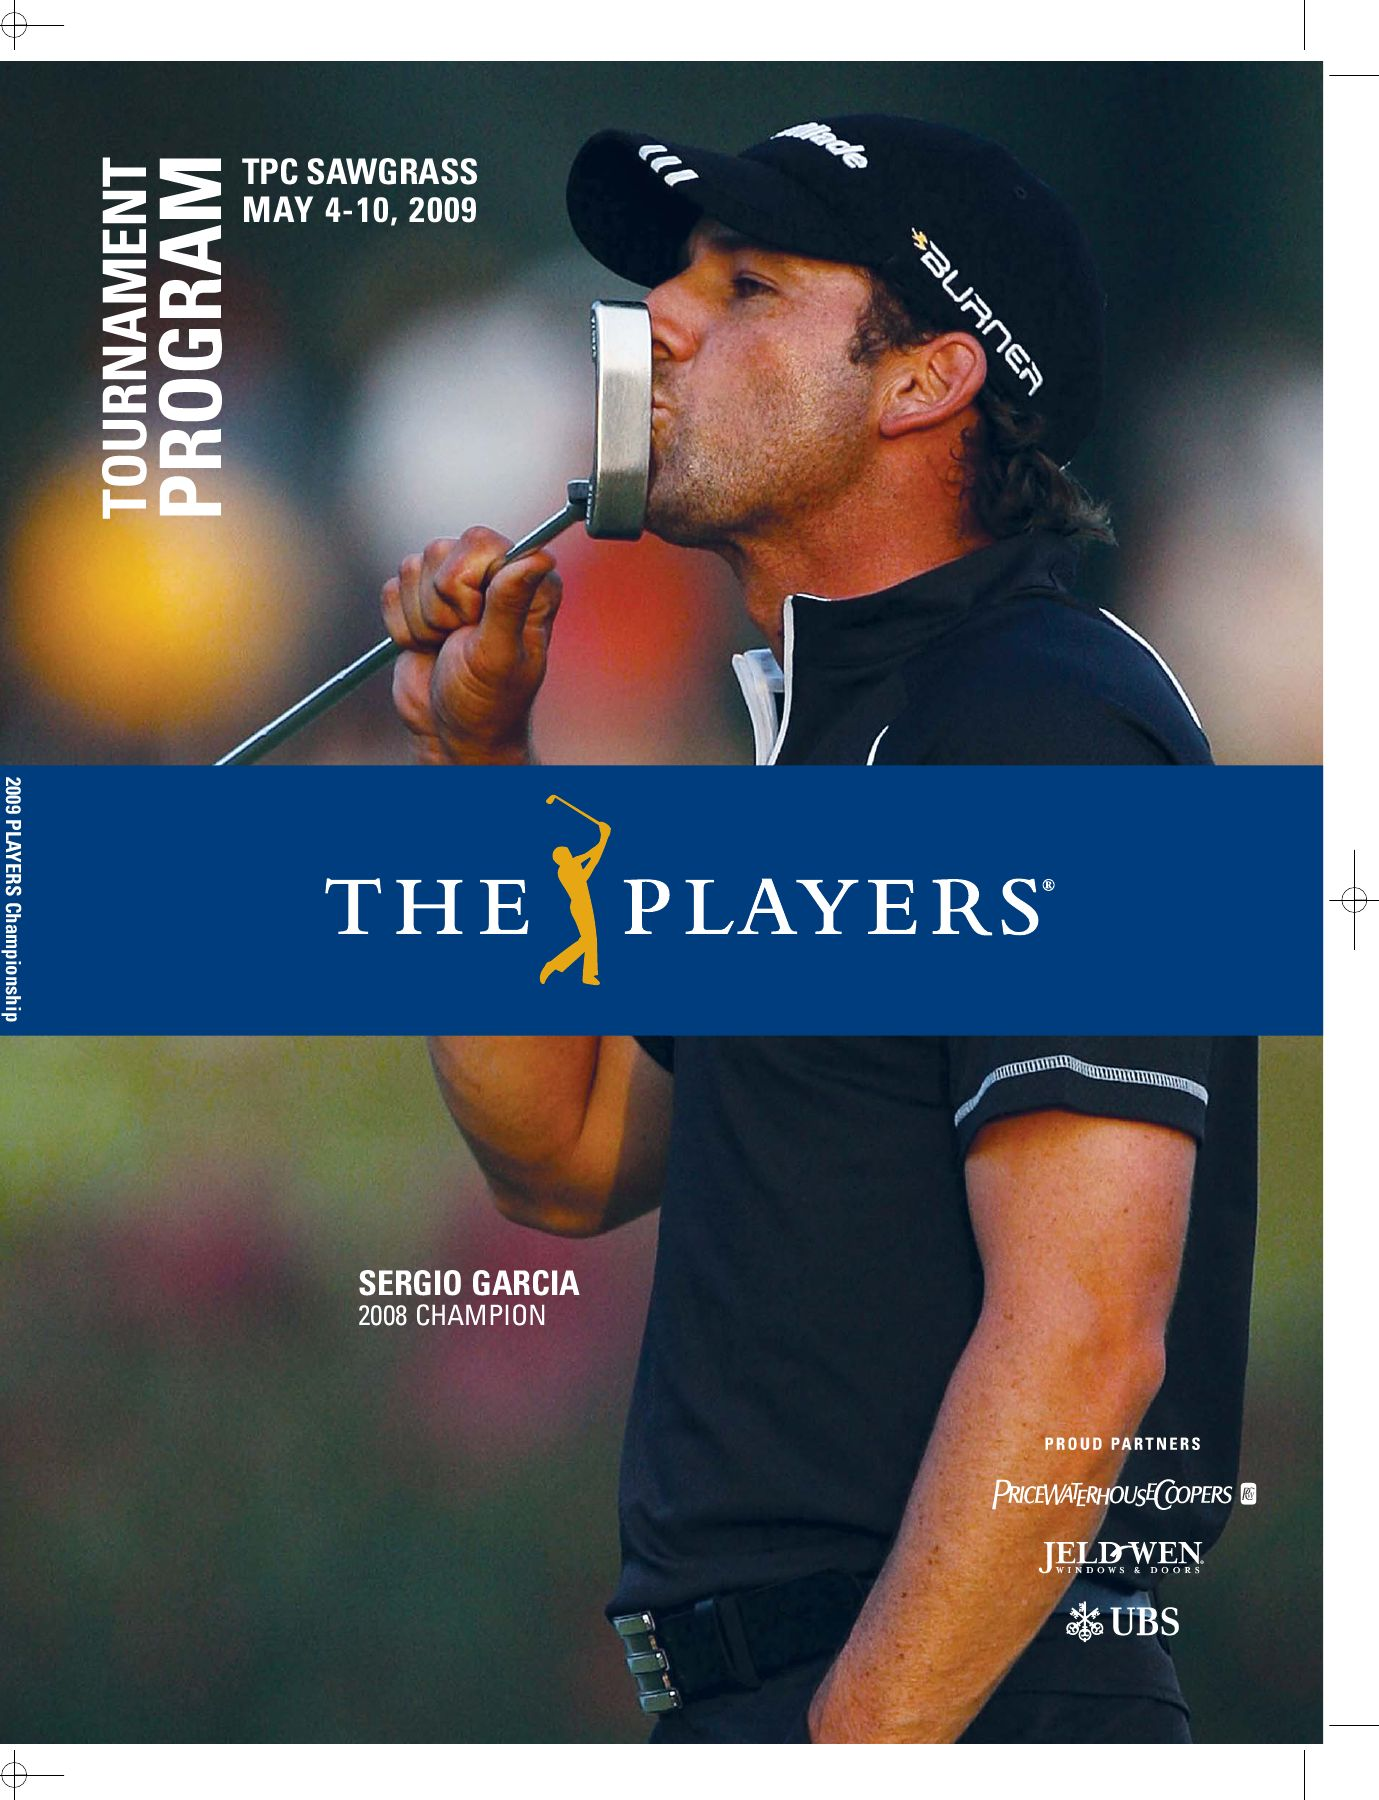 2009 PLAYERS CHAMPIONSHIP GUIDE by Kin Lo - issuu